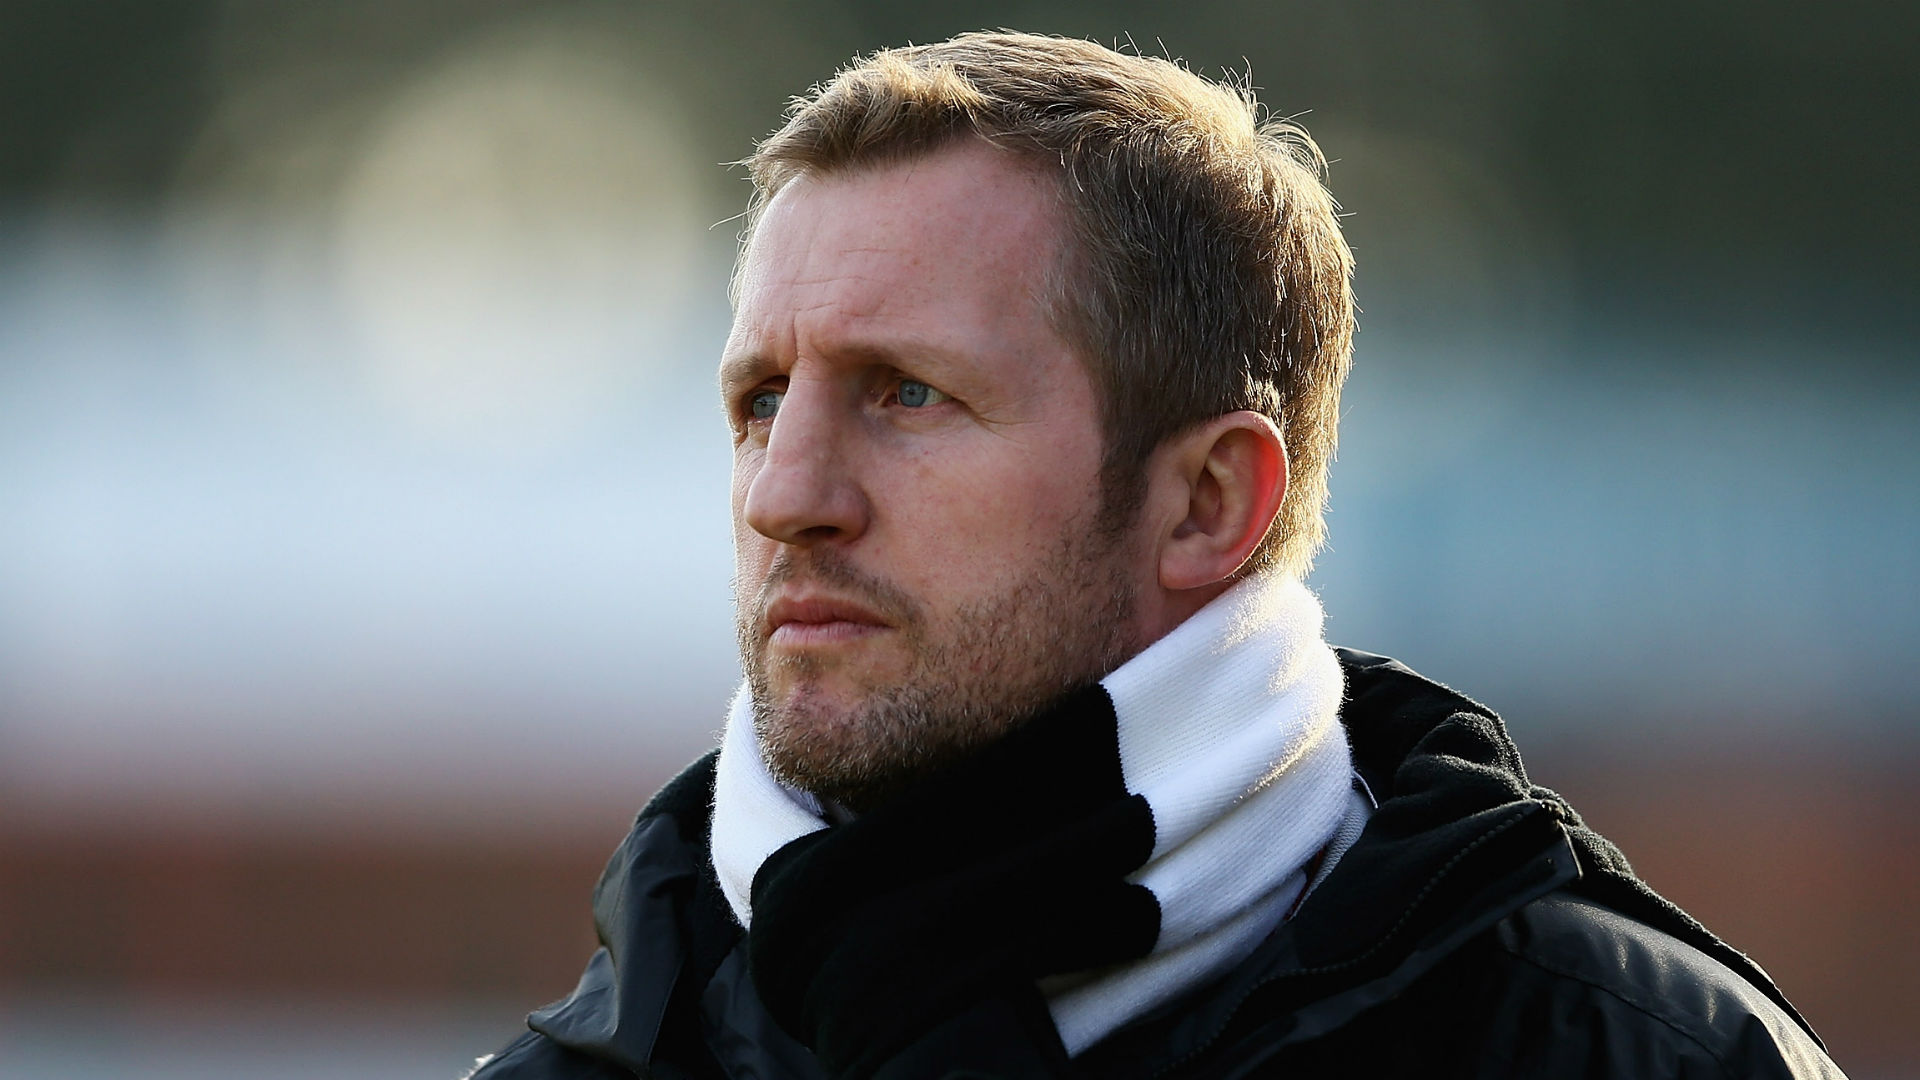 Denis Betts has been with Widnes Vikings since 2010, but another poor Super League campaign has cost him his role as head coach.